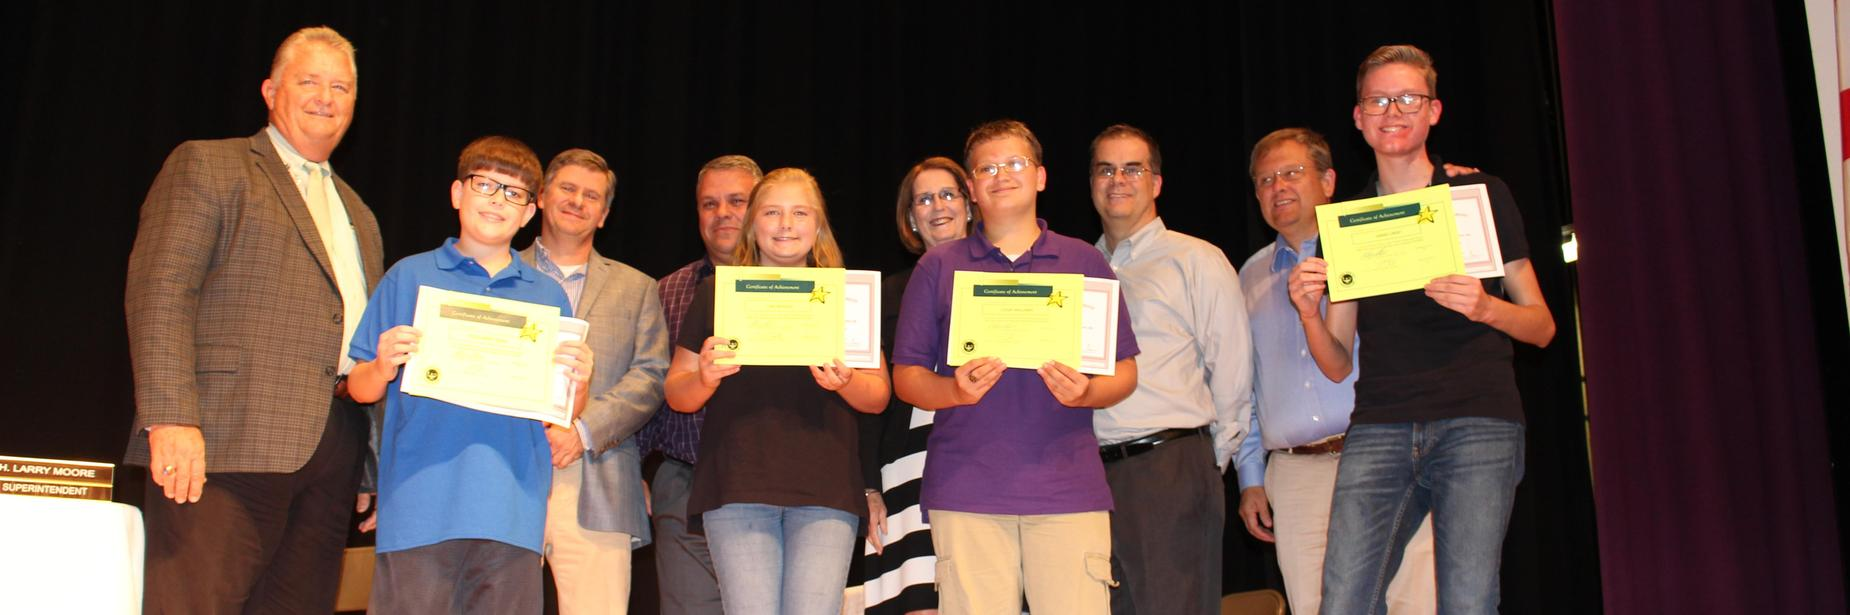 JCSB Student's with Perfect Scores